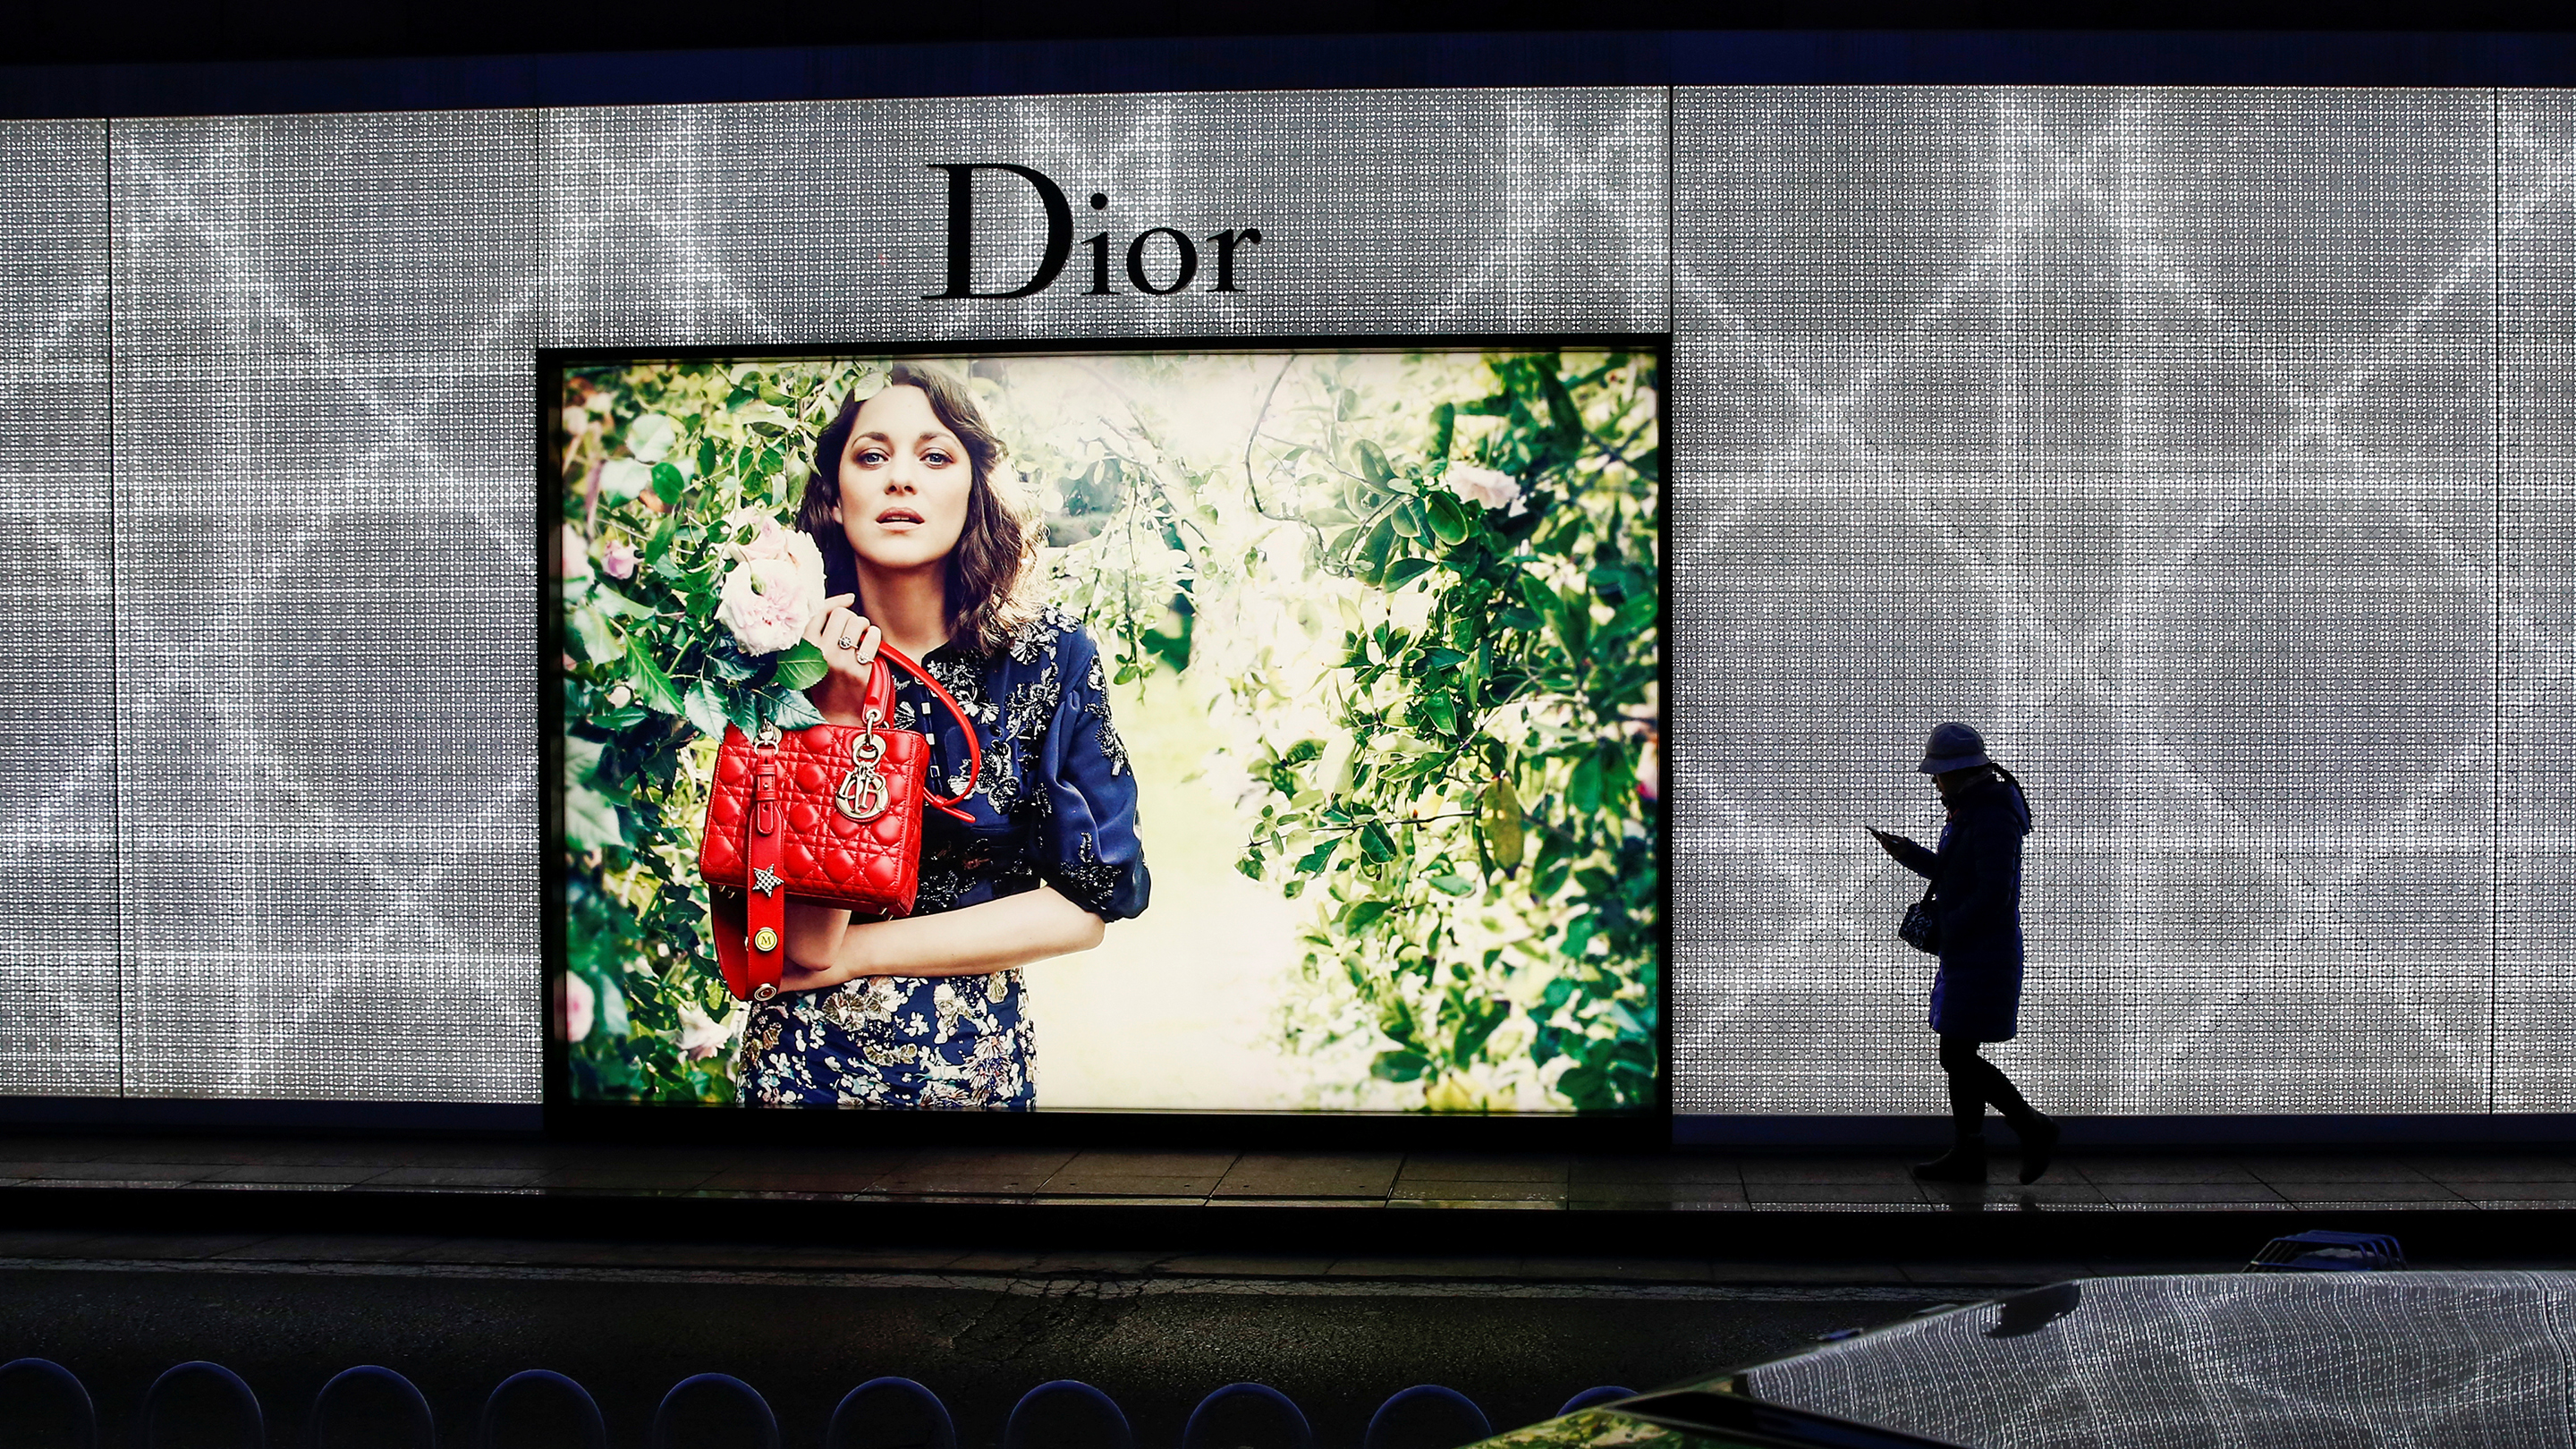 A woman walks past an advertising display of the Dior luxury goods company outside a department store in Beijing